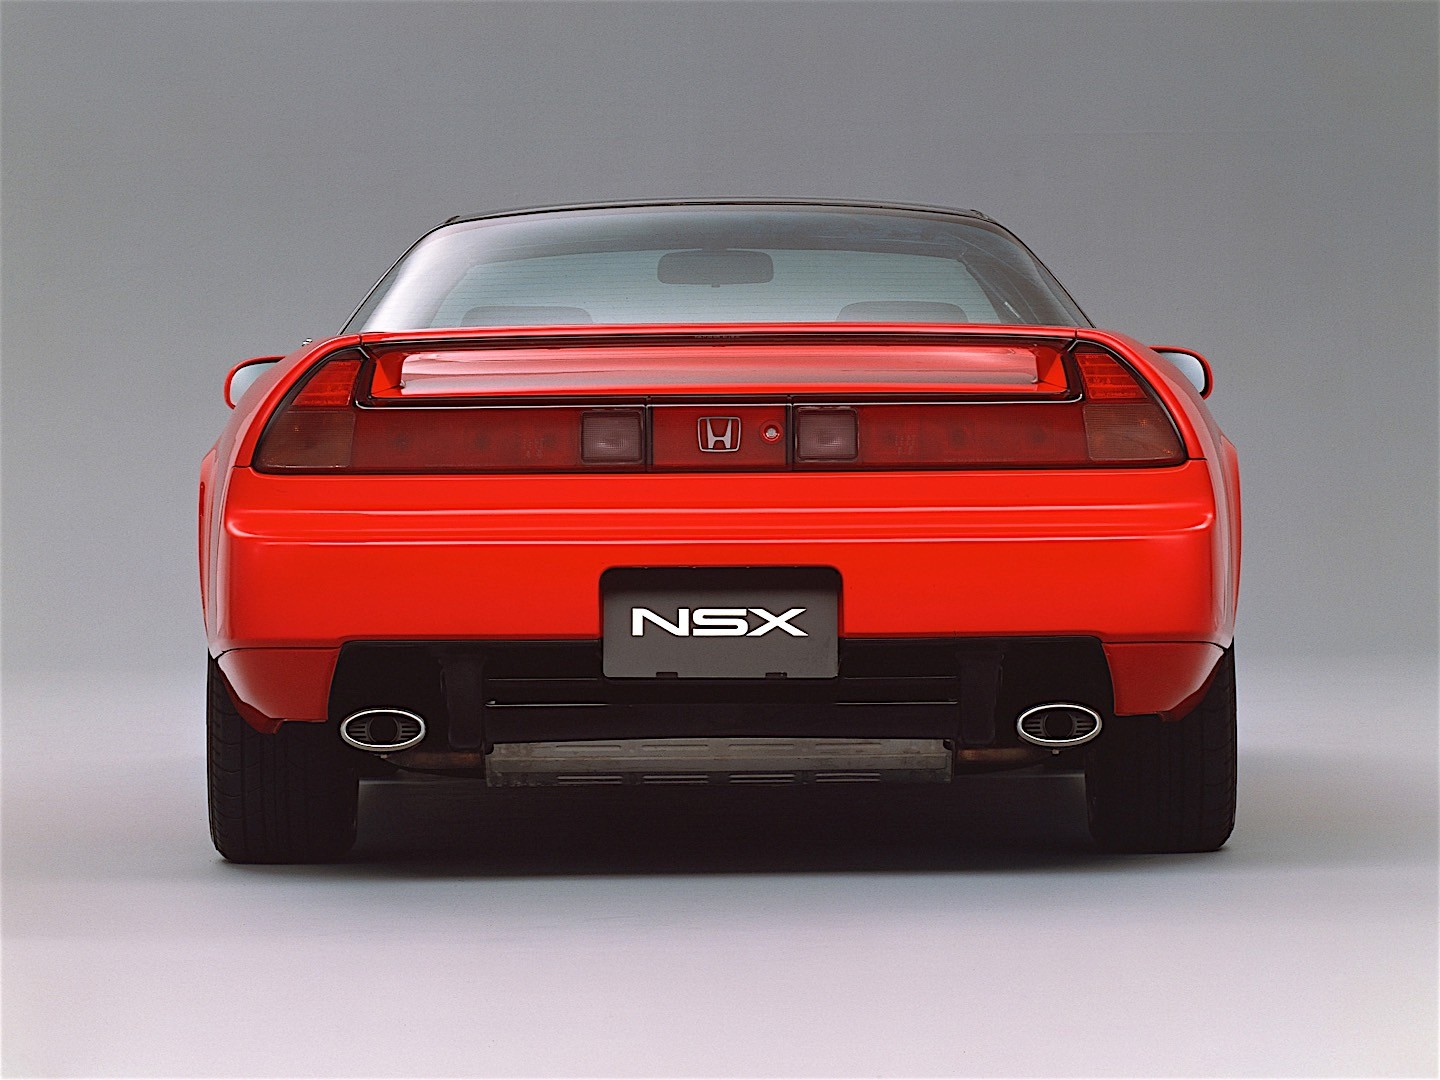 Acura Exotic Car >> HONDA NSX specs & photos - 1991, 1992, 1993, 1994, 1995, 1996, 1997 - autoevolution